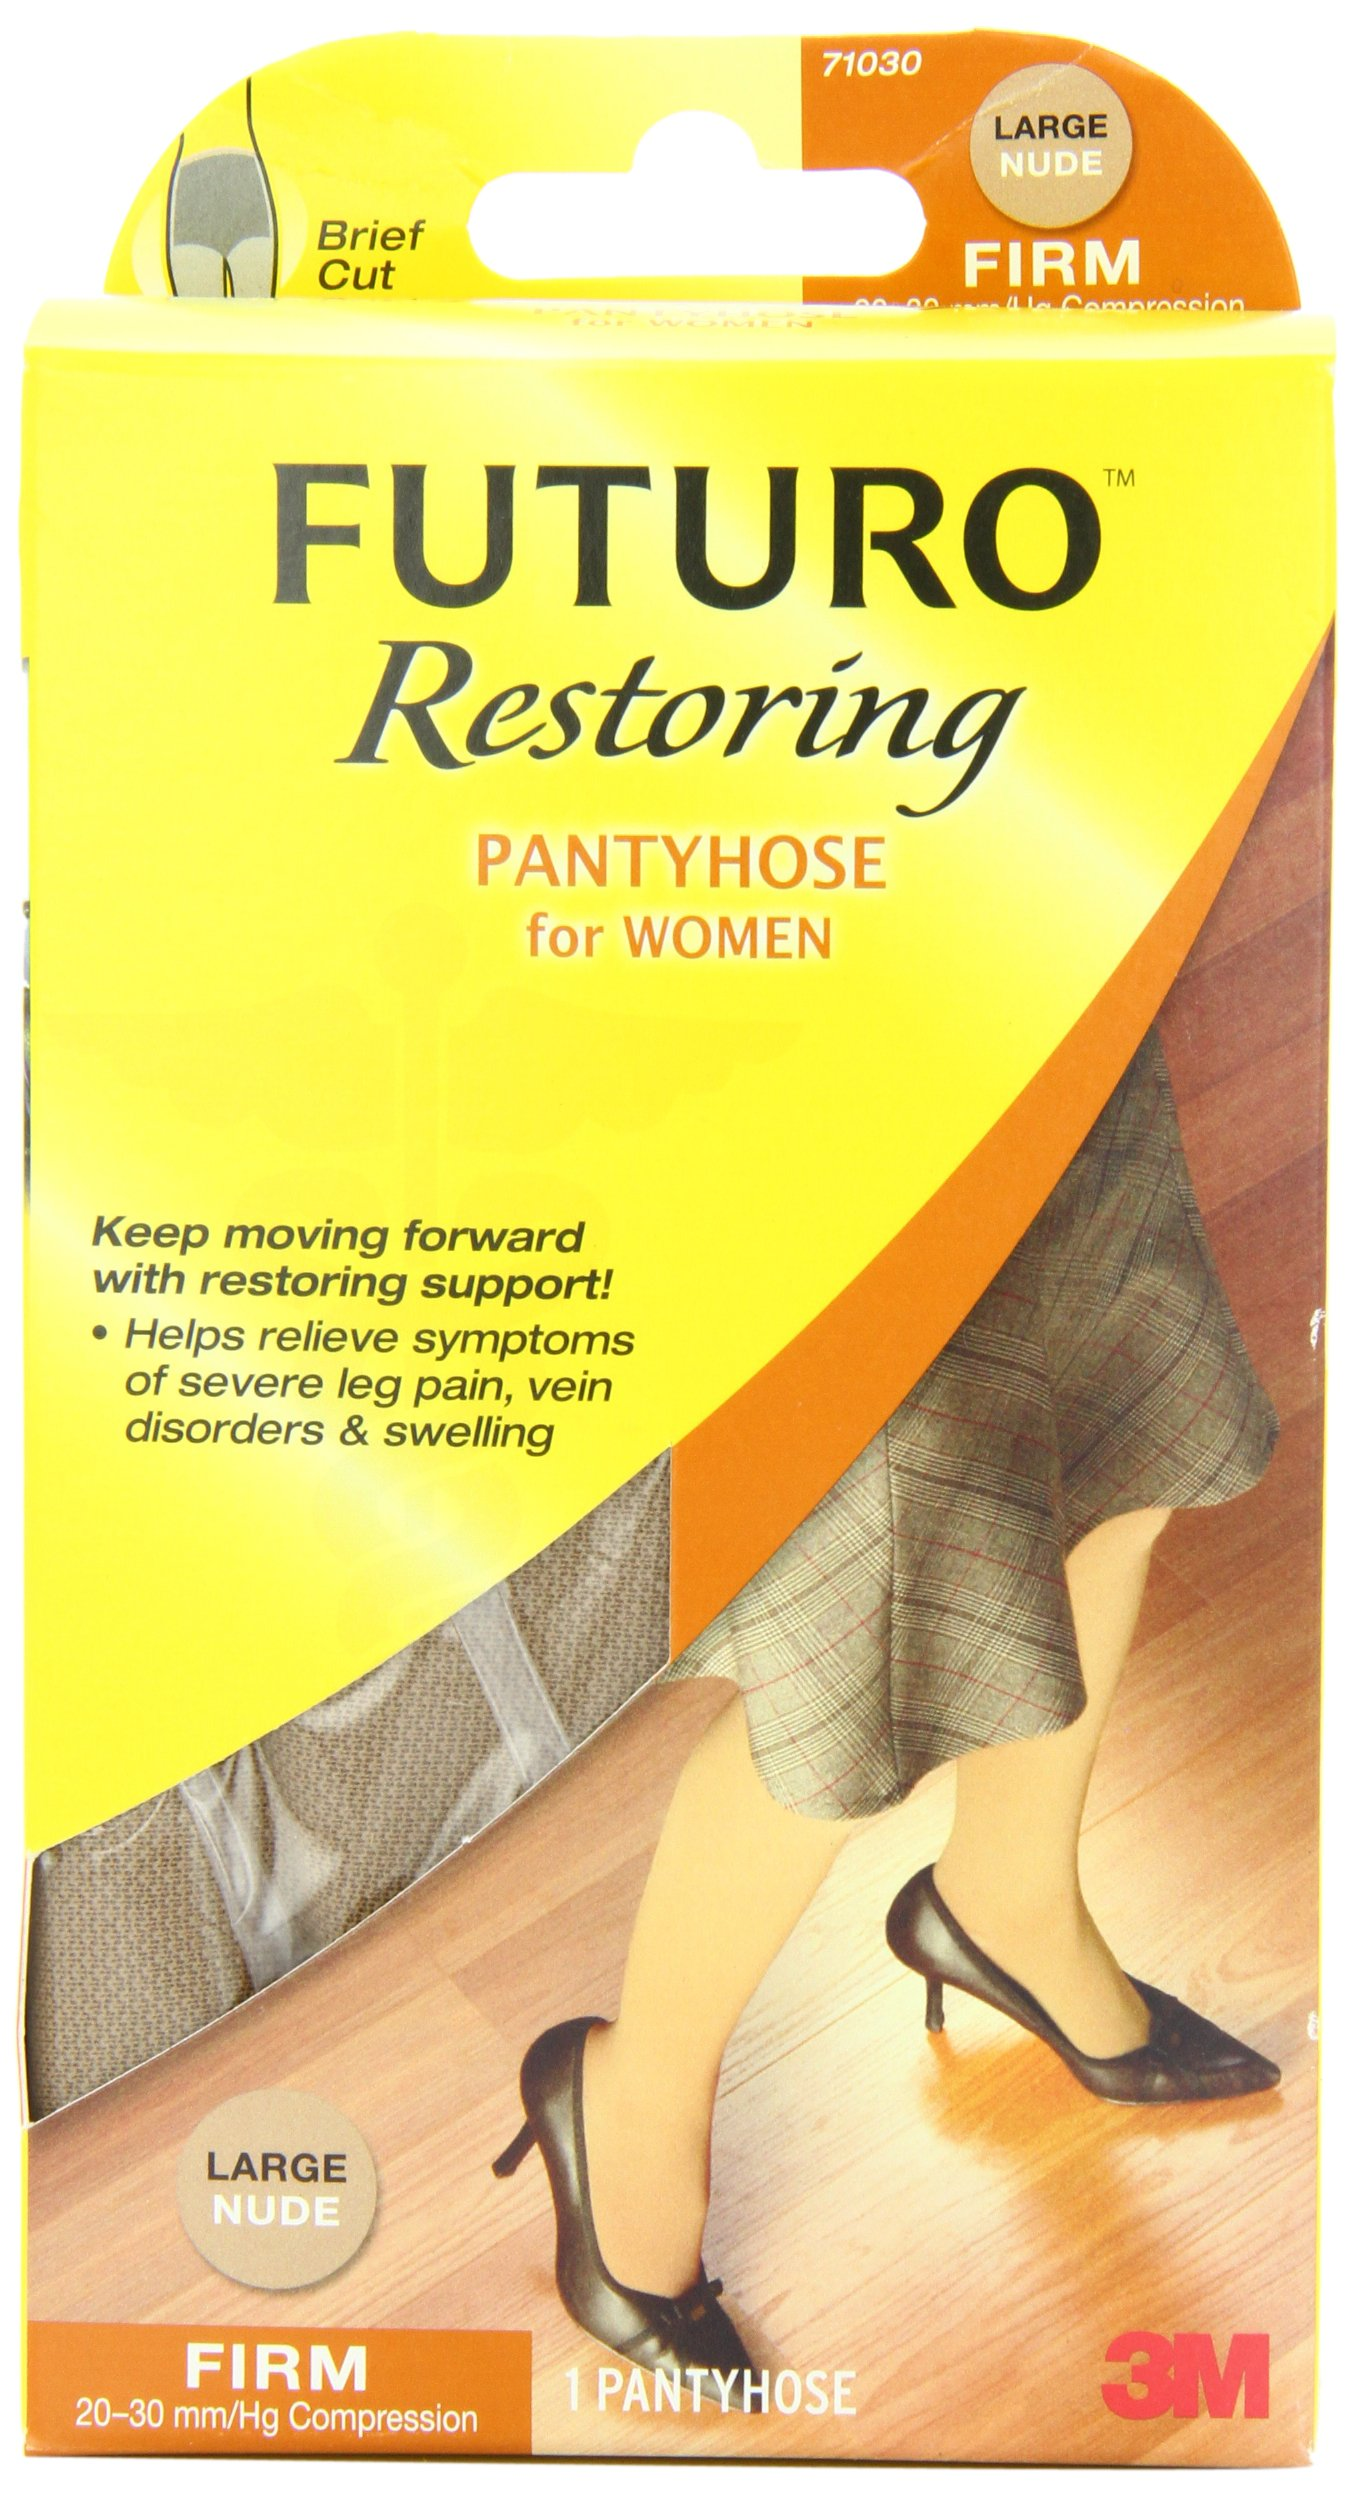 Futuro Restoring Pantyhose for Women, Helps Improve Circulation for Tired Legs, Eases Symptoms of Moderate-to-Severe Varicose Veins, Brief Cut, Large, Nude, Firm Compression by Futuro (Image #1)